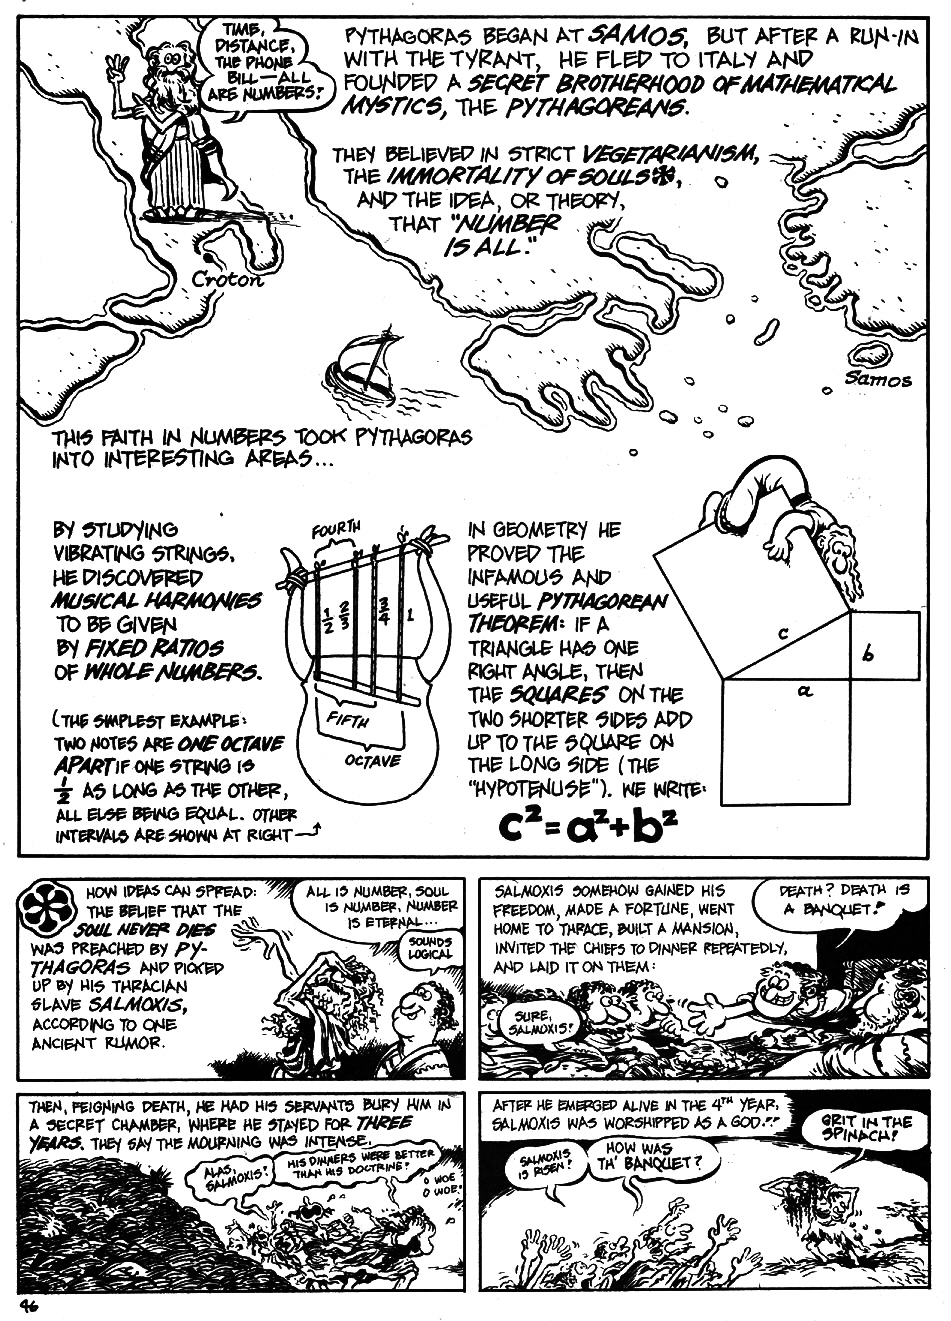 Read online The Cartoon History of the Universe comic -  Issue #5 - 48